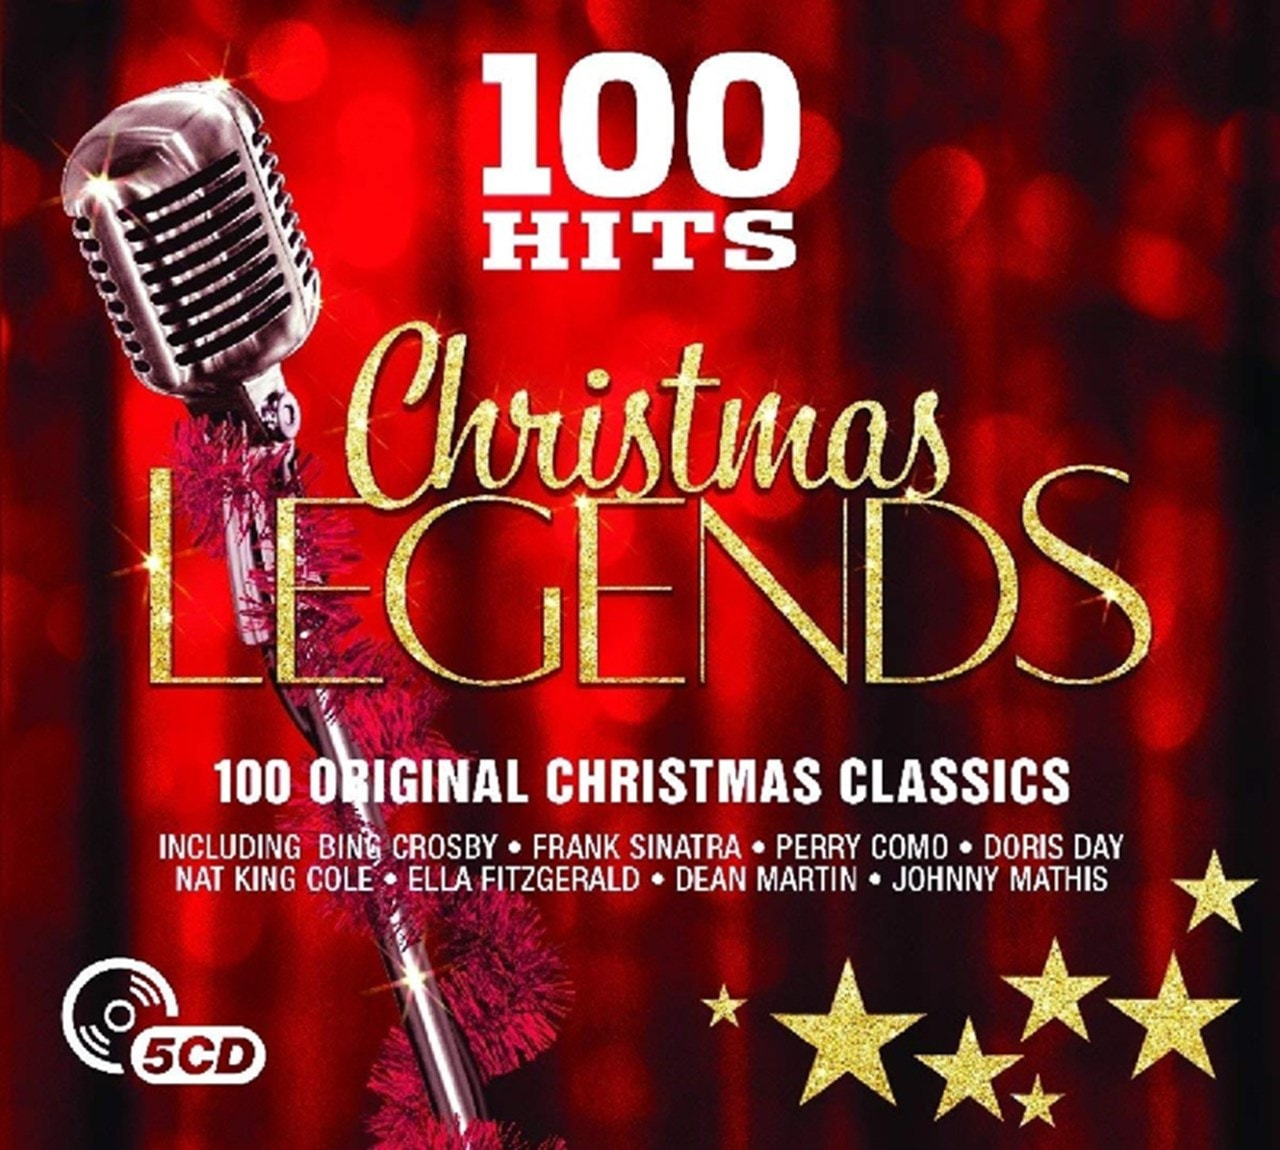 100 Hits: Christmas Legends - 1